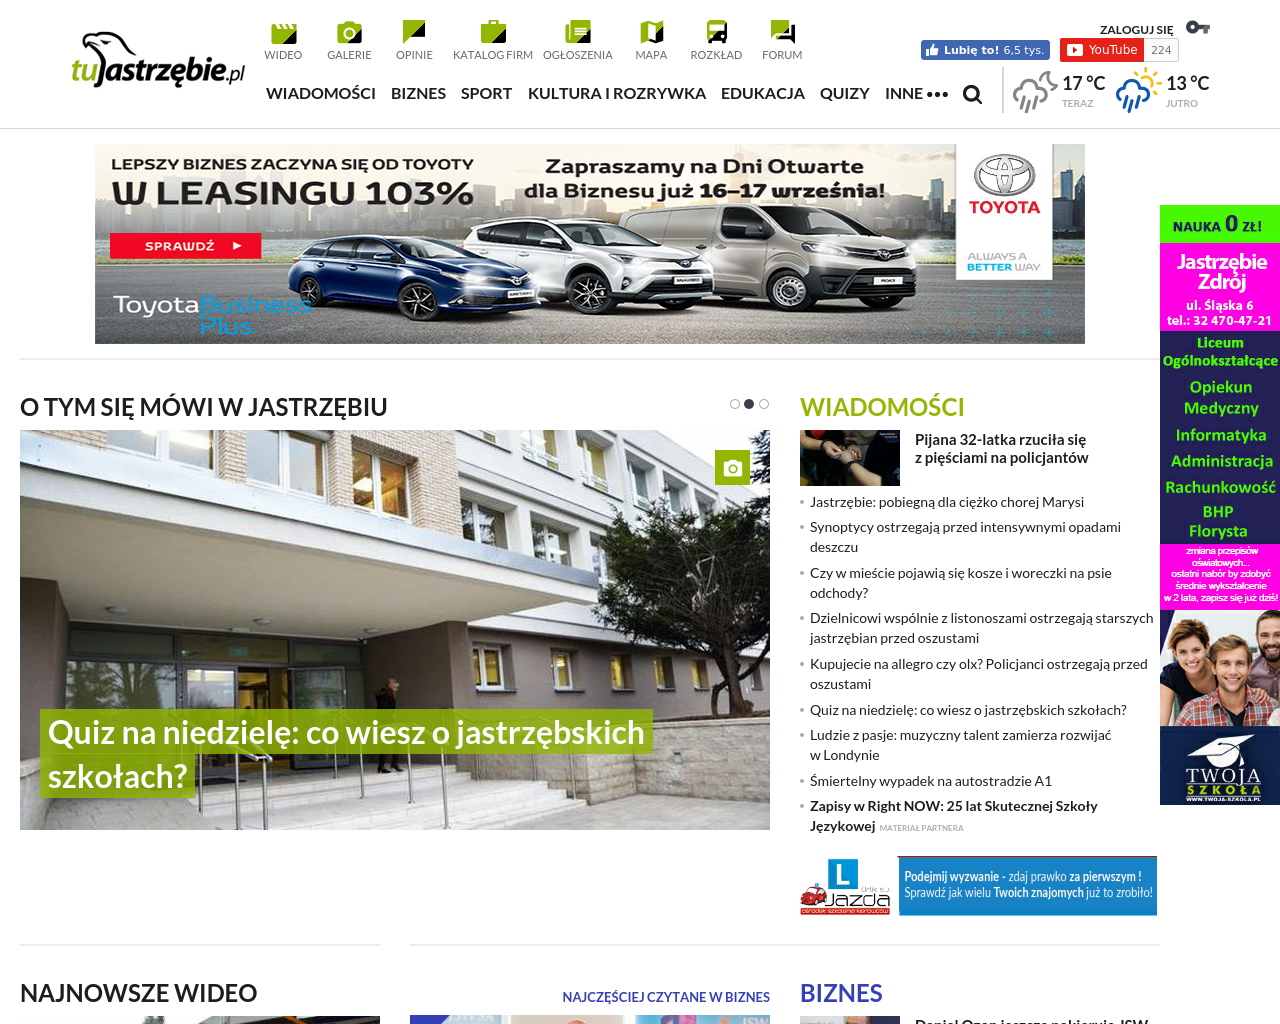 Tujastrzebie.pl-Advertising-Reviews-Pricing